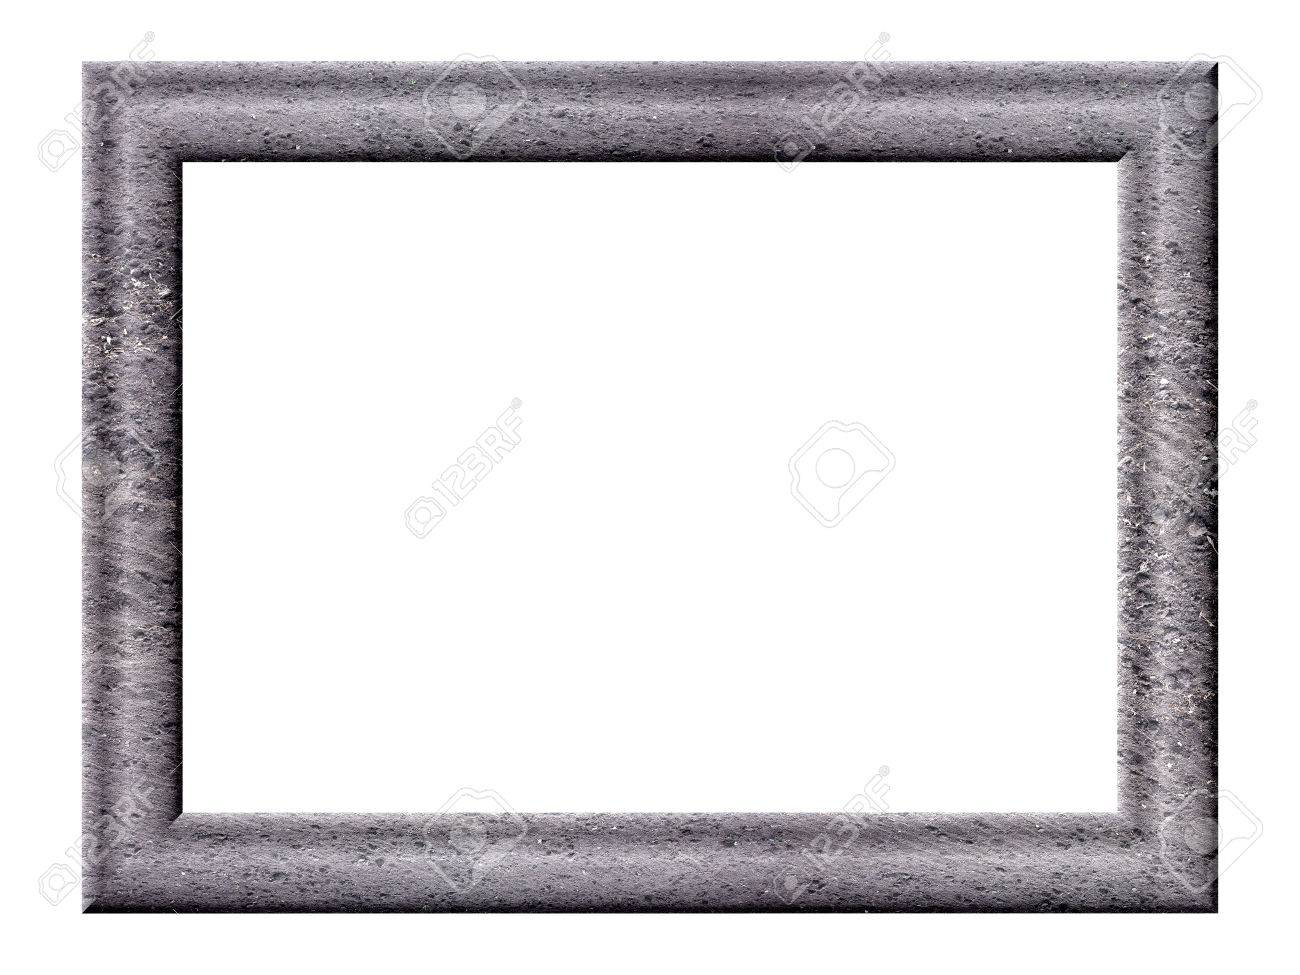 The Rectangular Volume Picture Frames Gray Tones With Texture ...